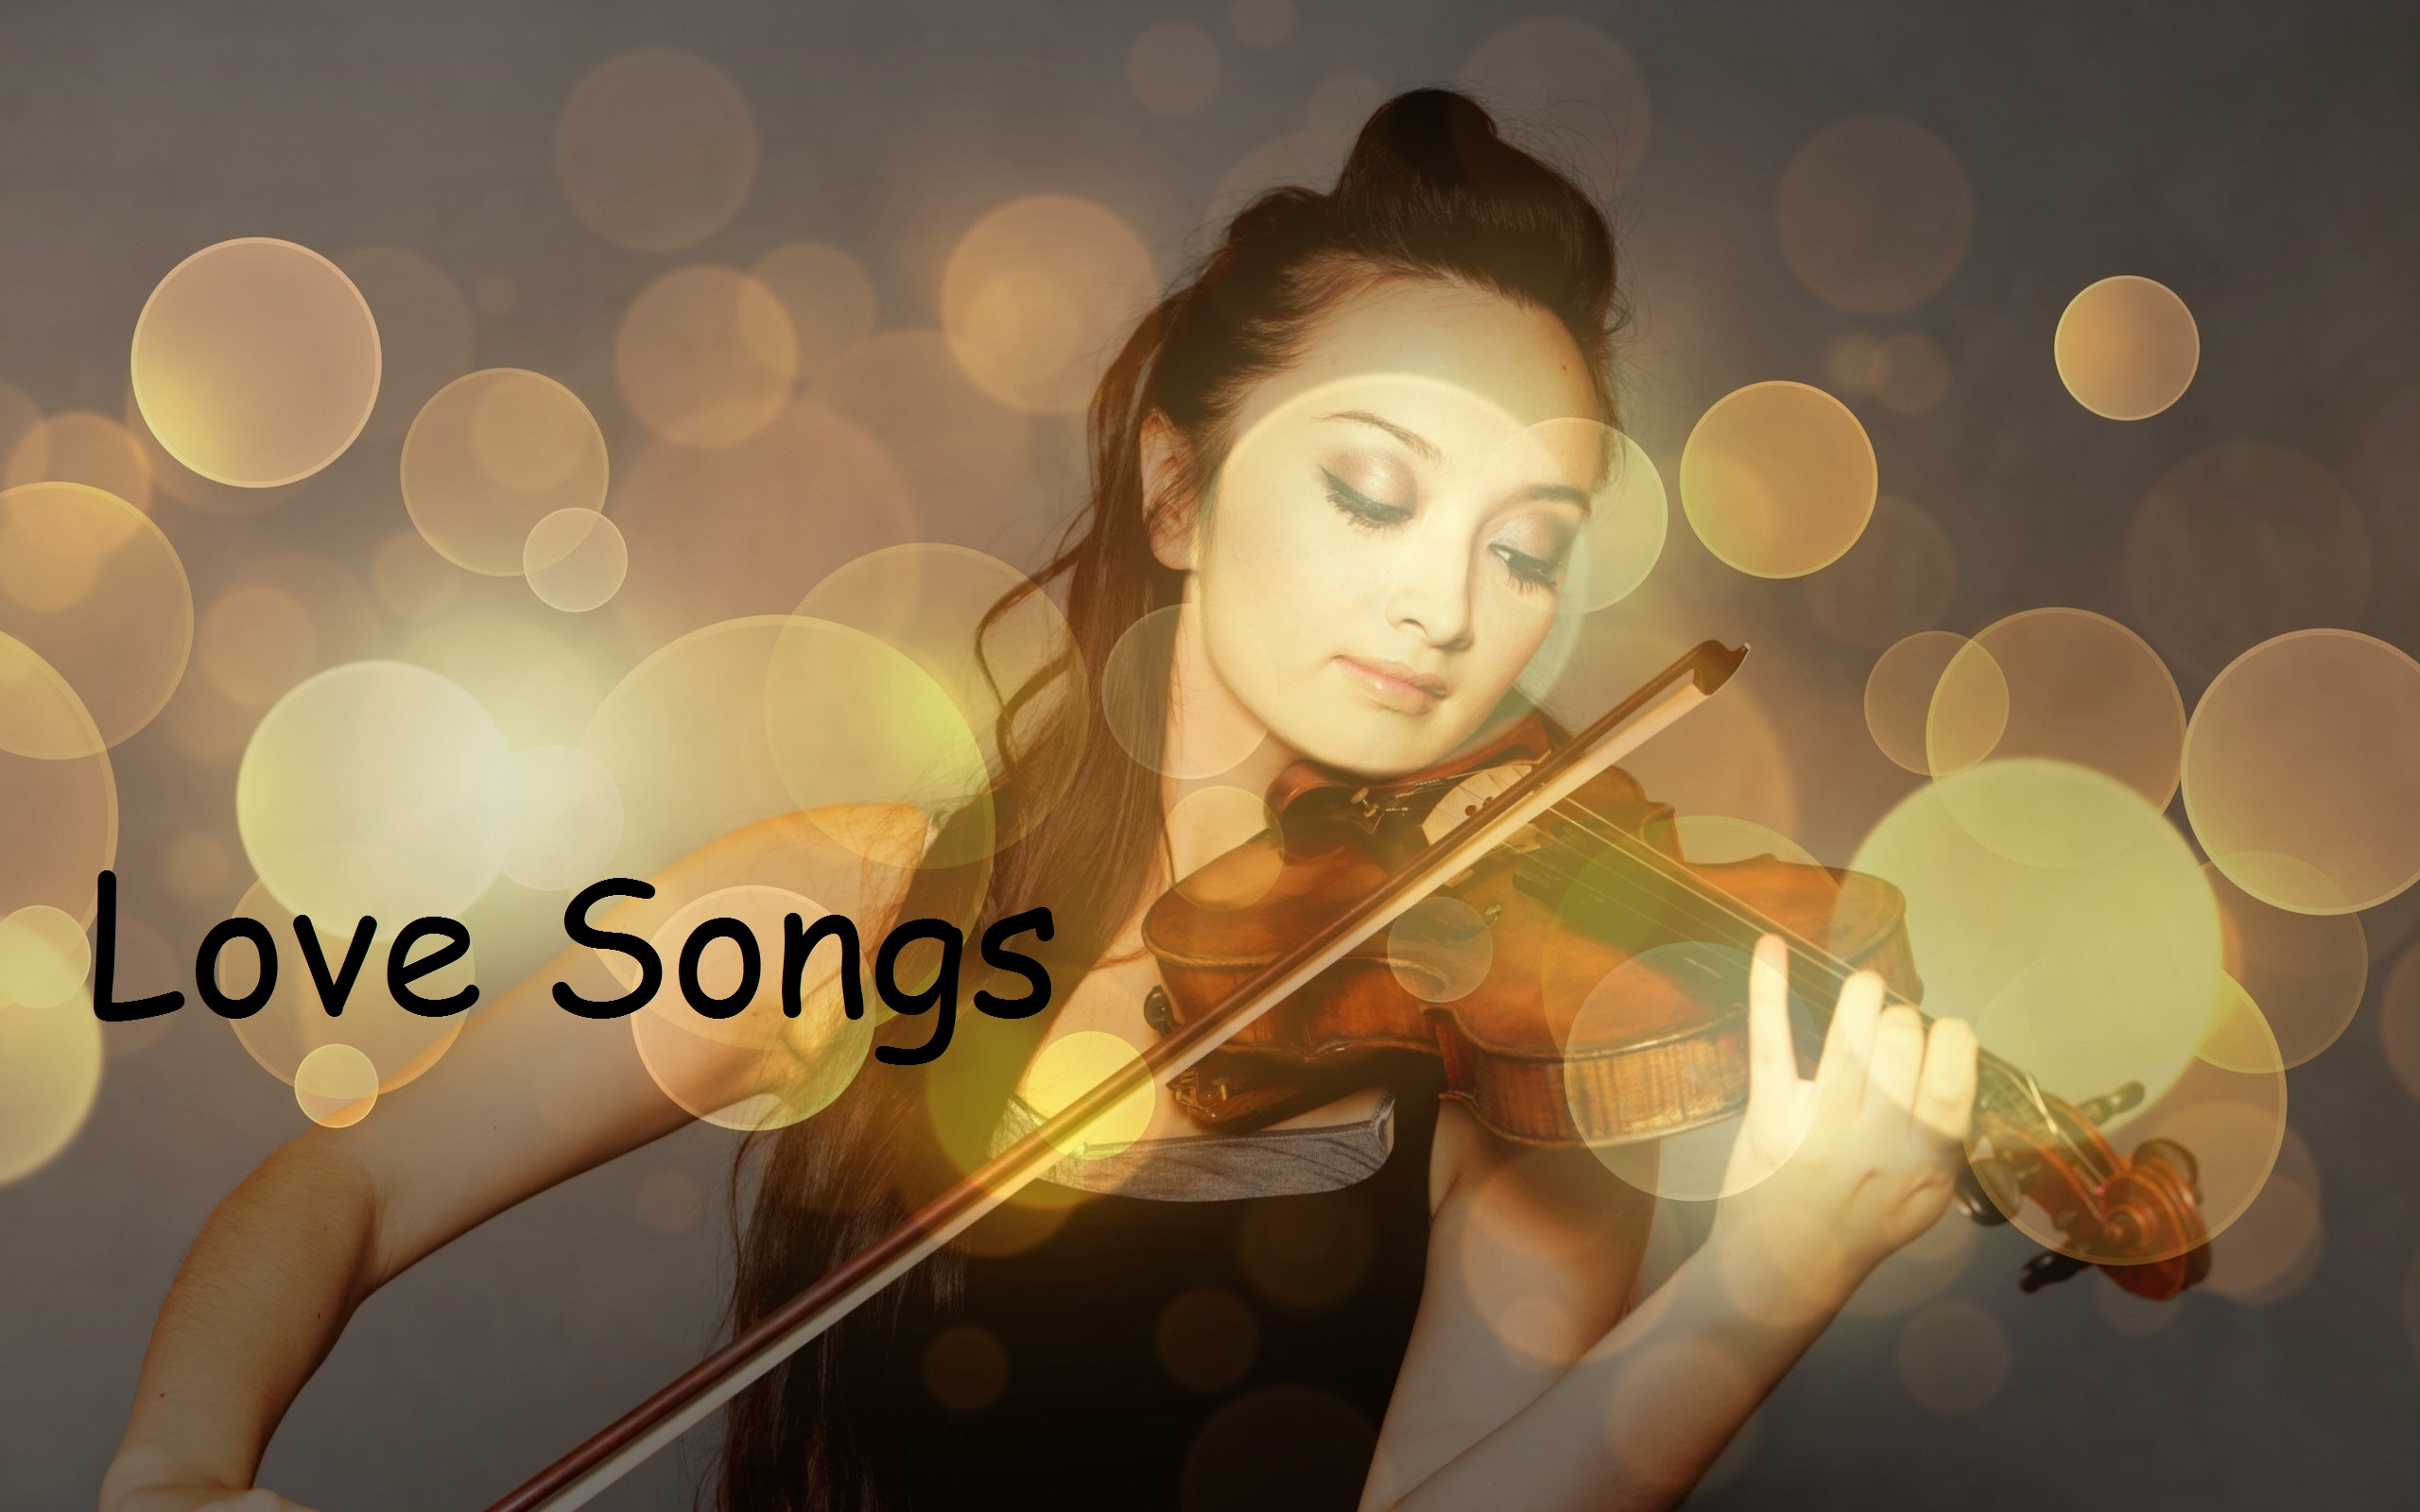 Love Songs Captions Hindi Captionsgram Some of these songs may be old and some of them may be new. love songs captions hindi captionsgram